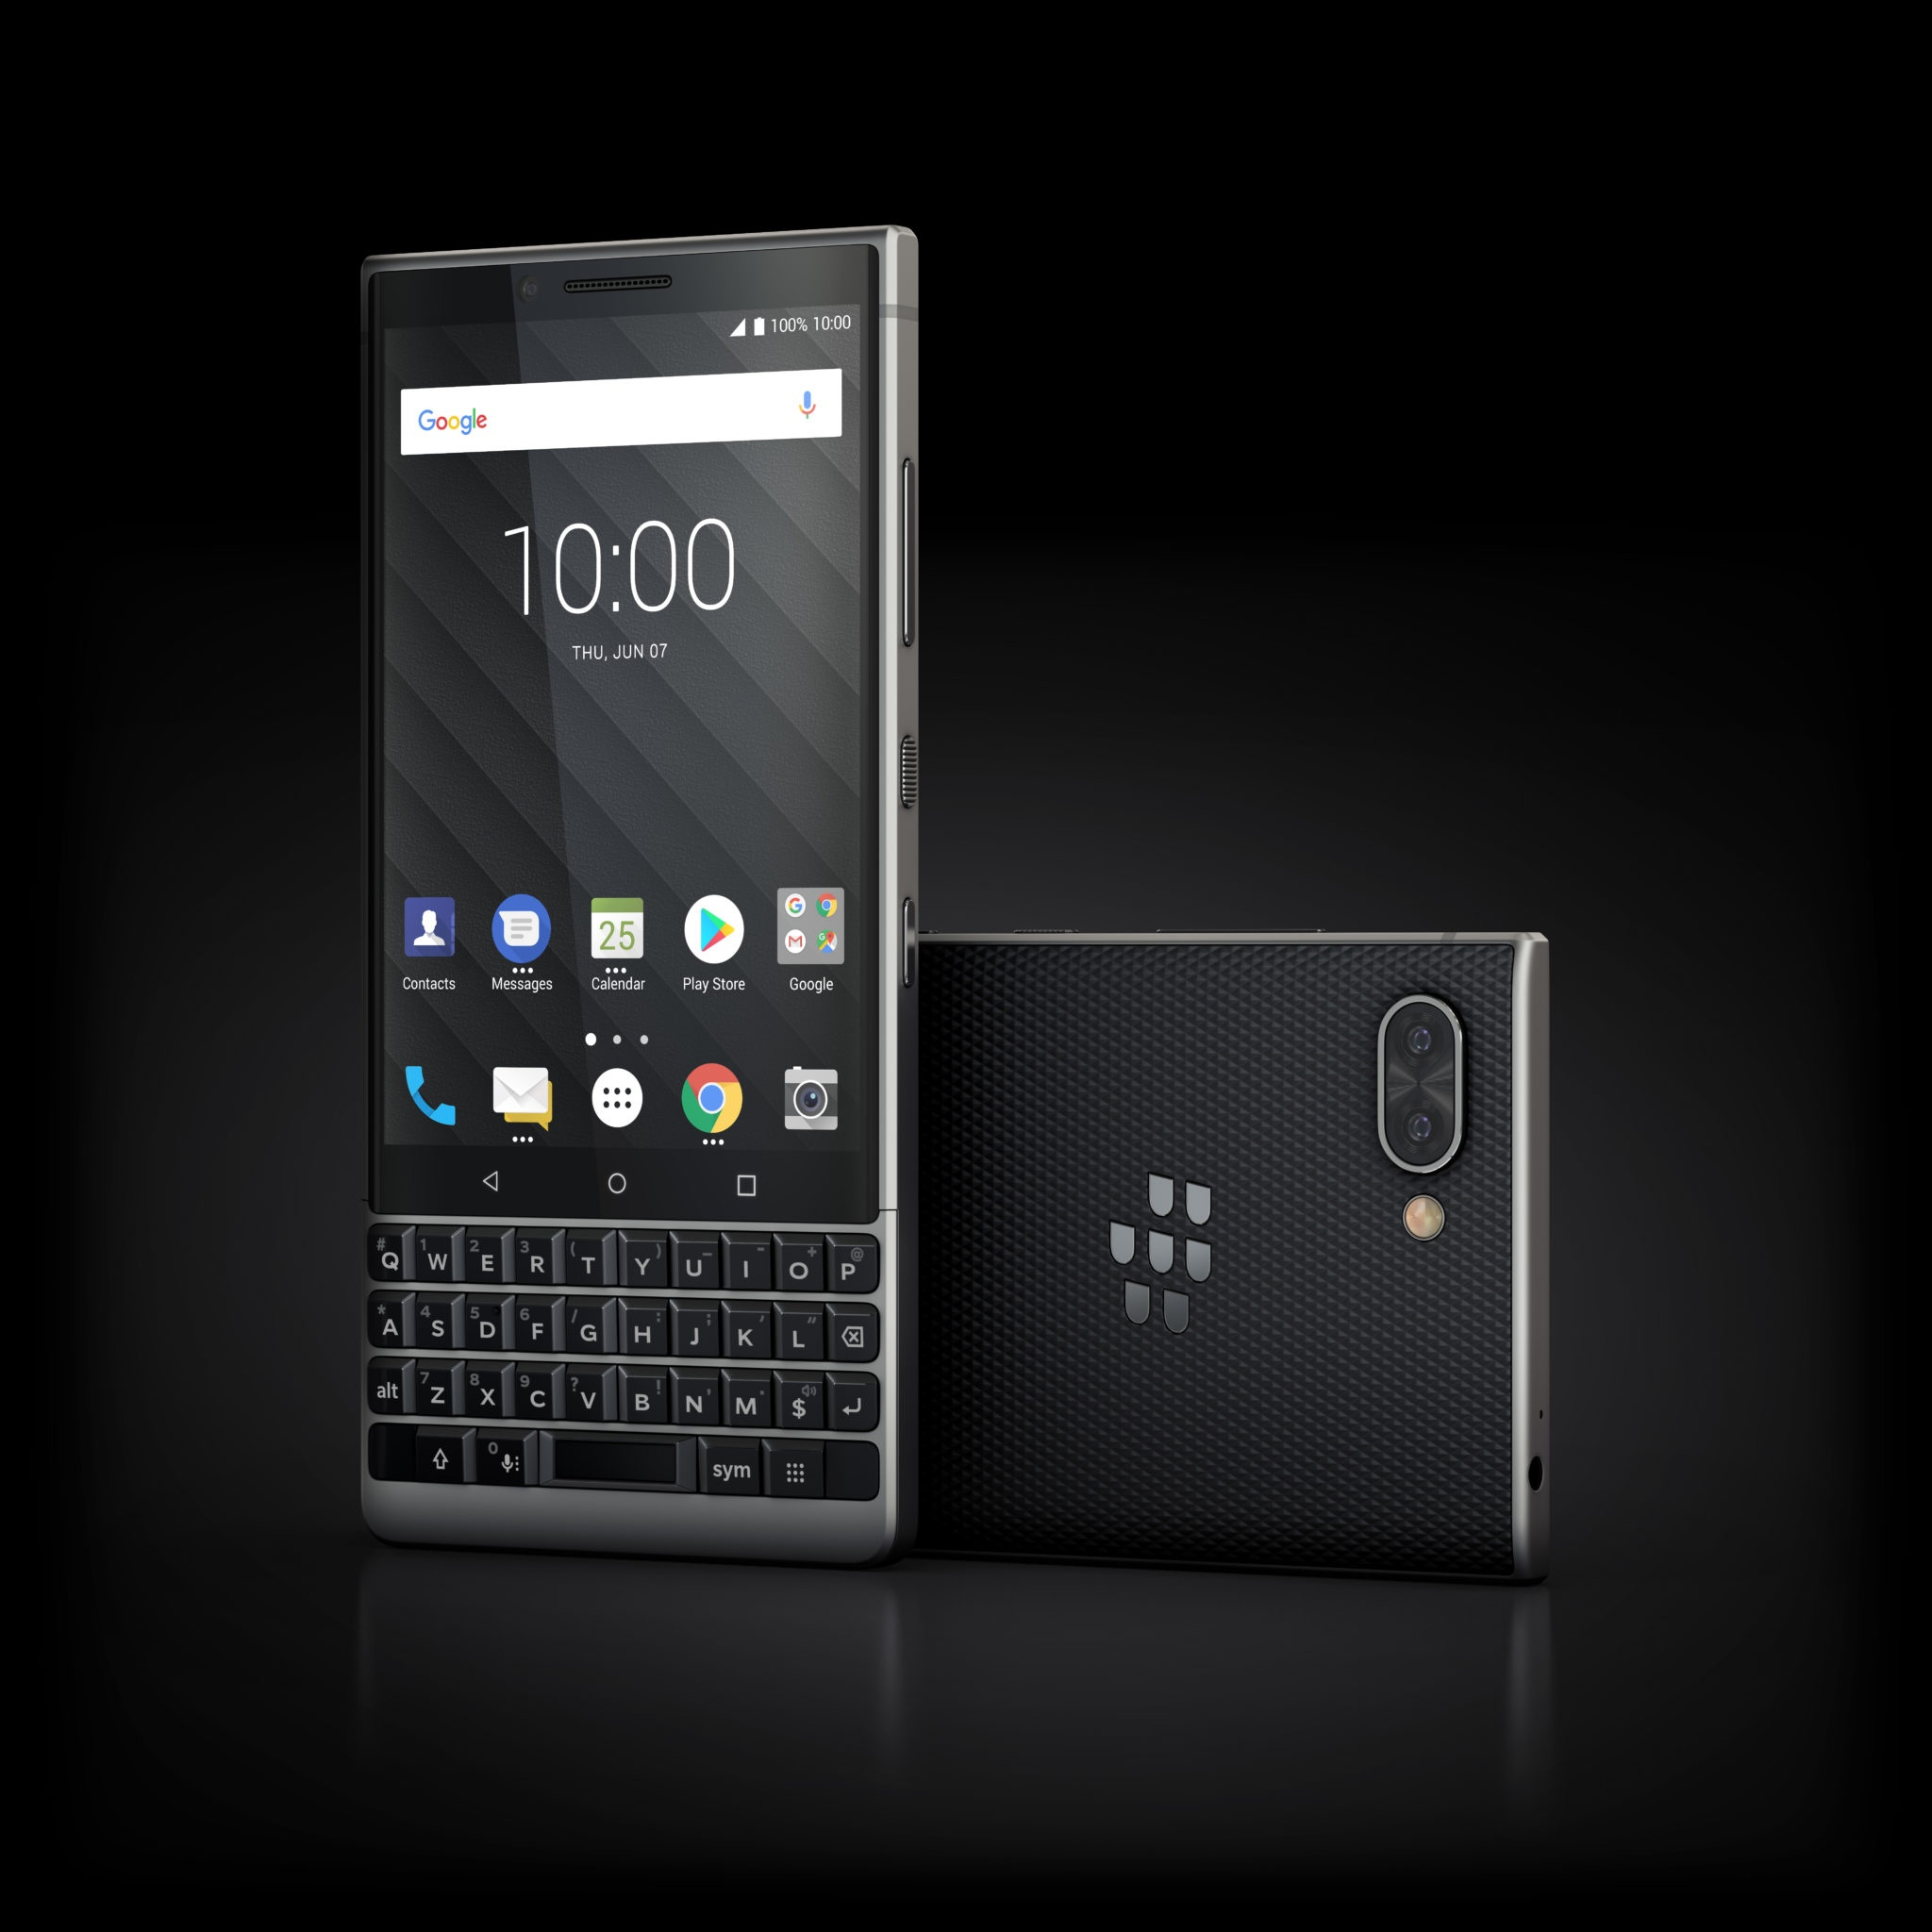 Will the BlackBerry Key2 improve its features? - Quora